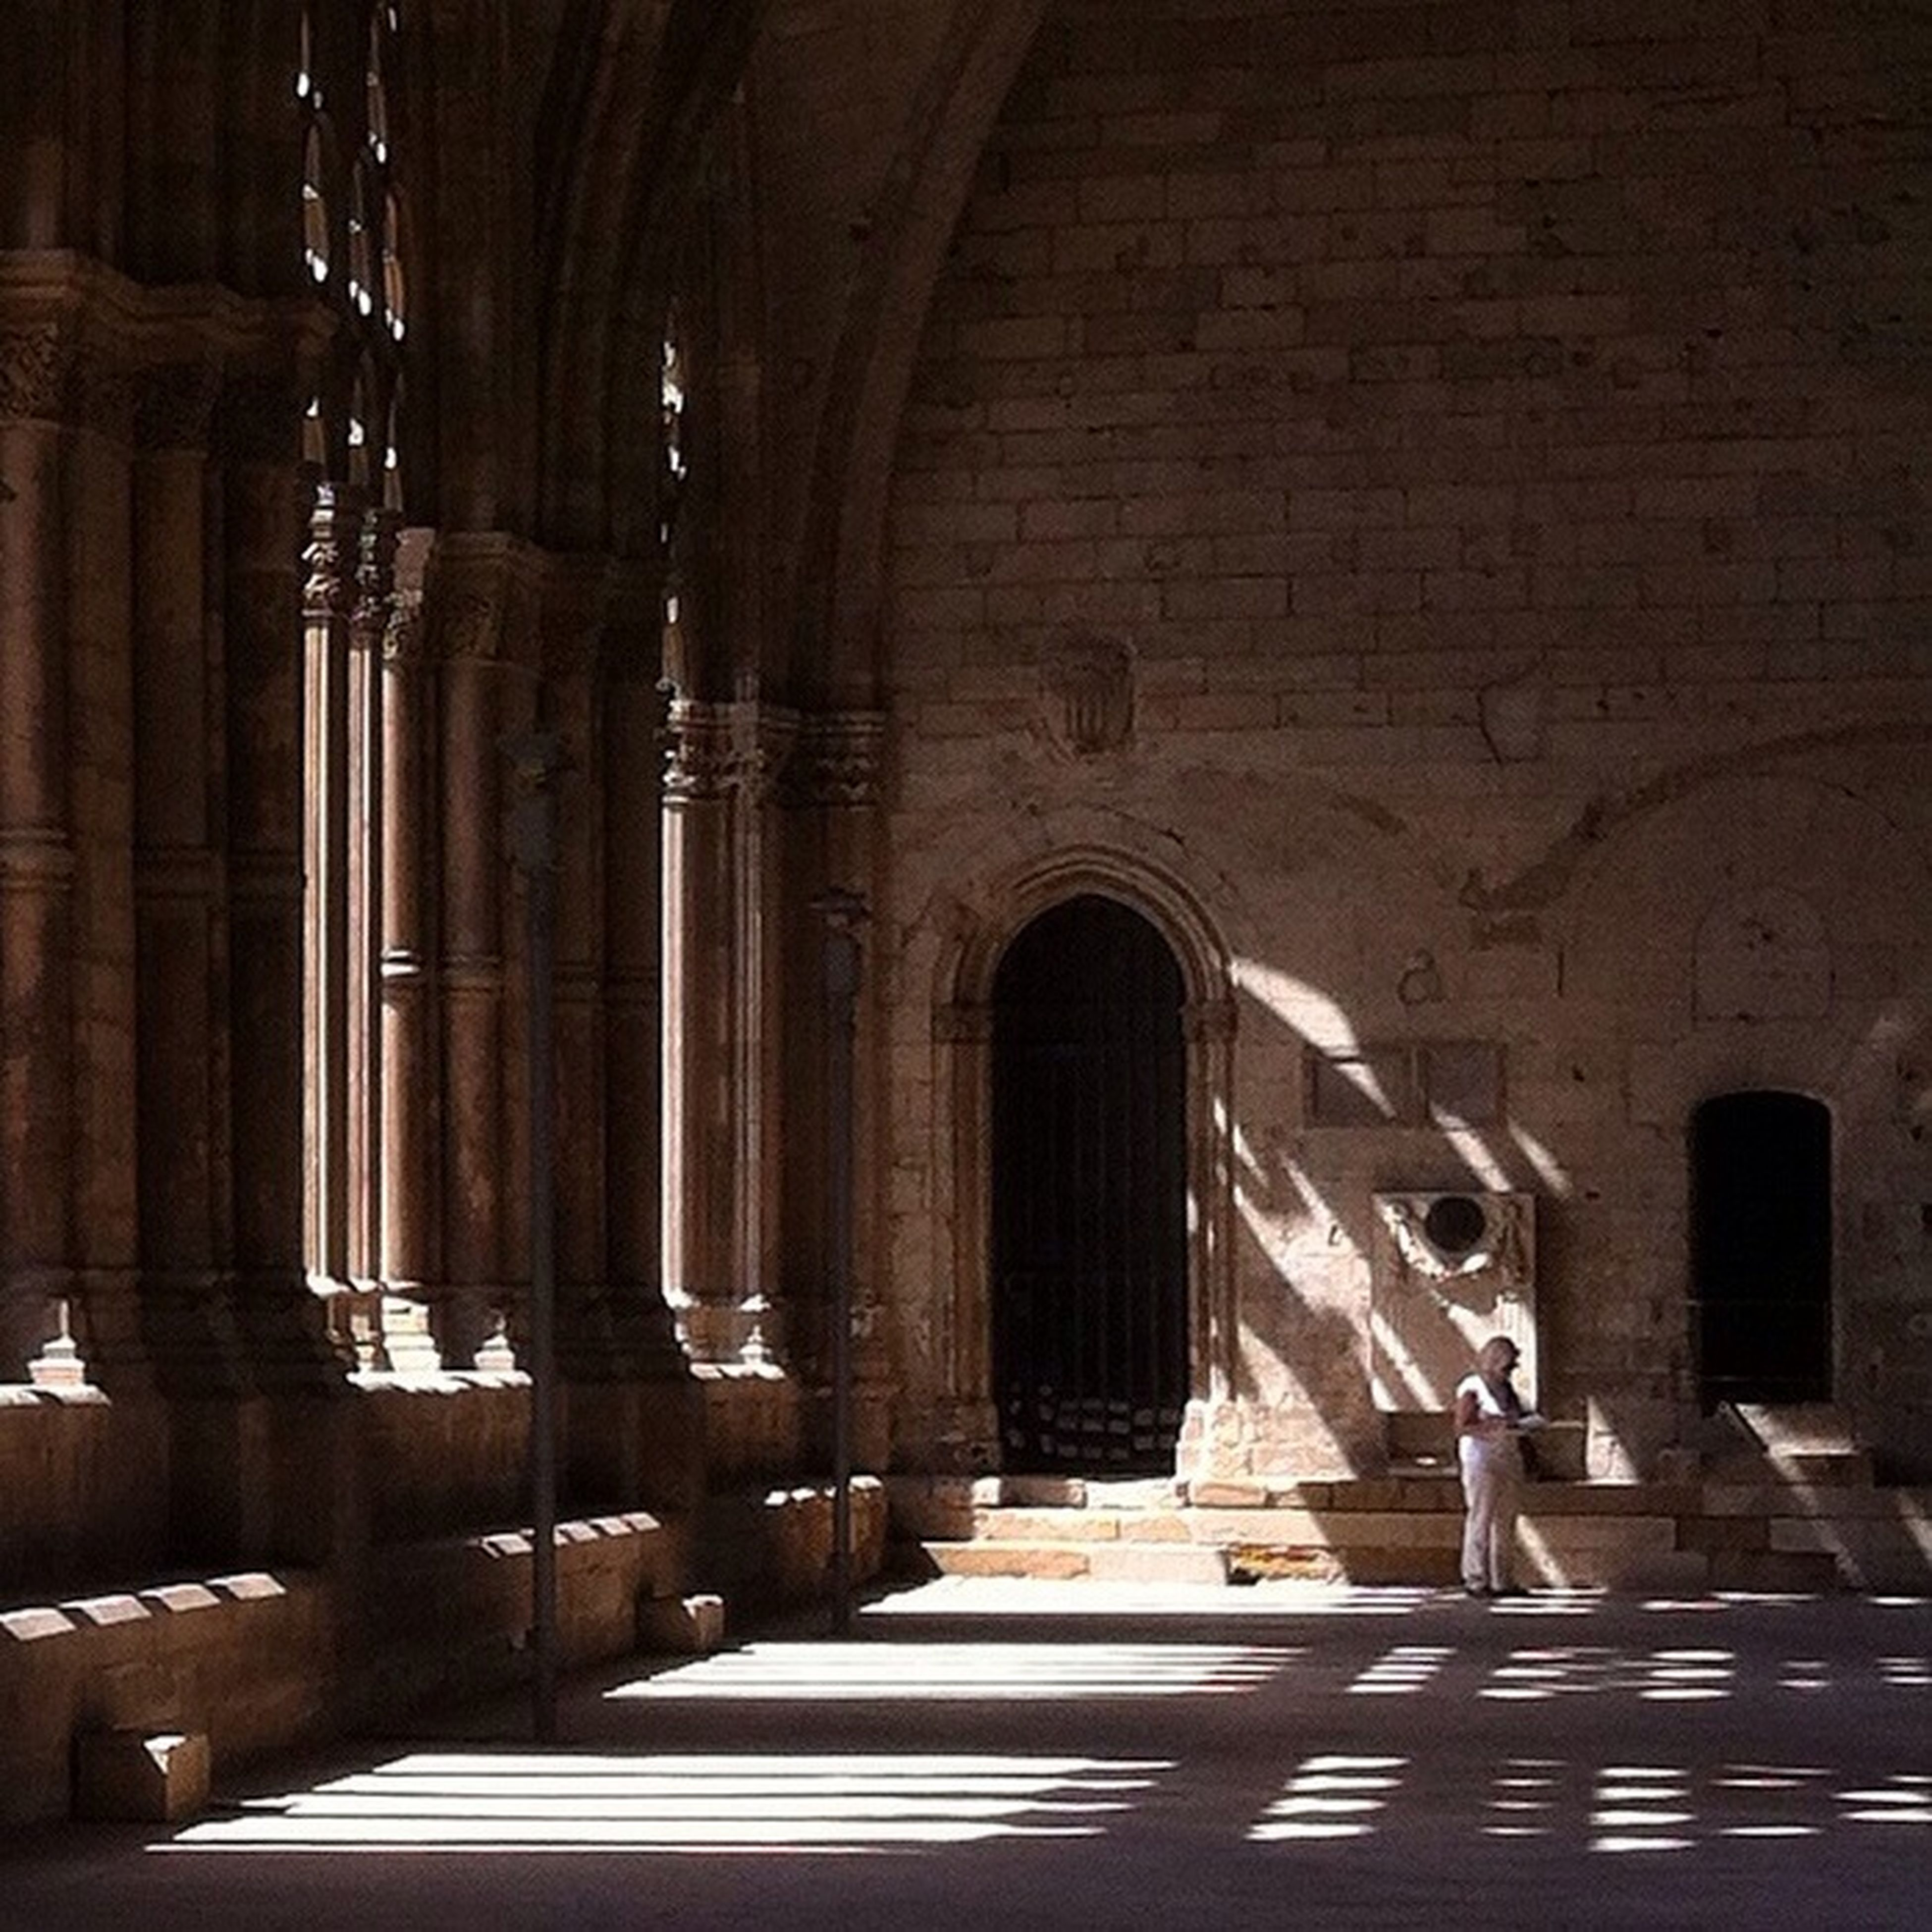 arch, architecture, built structure, indoors, history, old, archway, building exterior, entrance, architectural column, corridor, historic, church, the way forward, the past, building, interior, religion, door